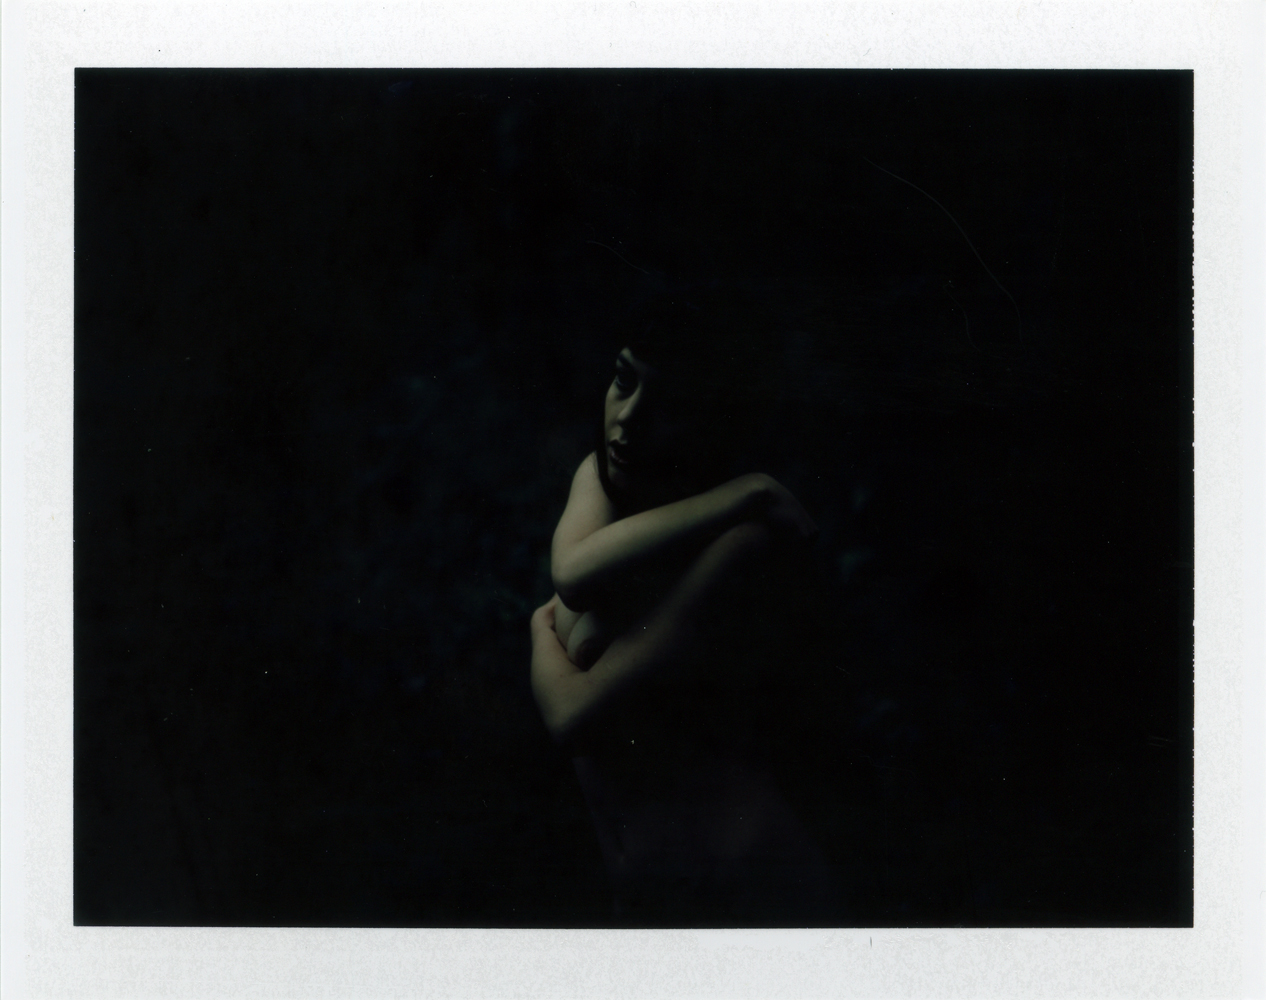 Gestalta photographed by Selina Mayer. Colour polaroid artistic nude image shot in the forest